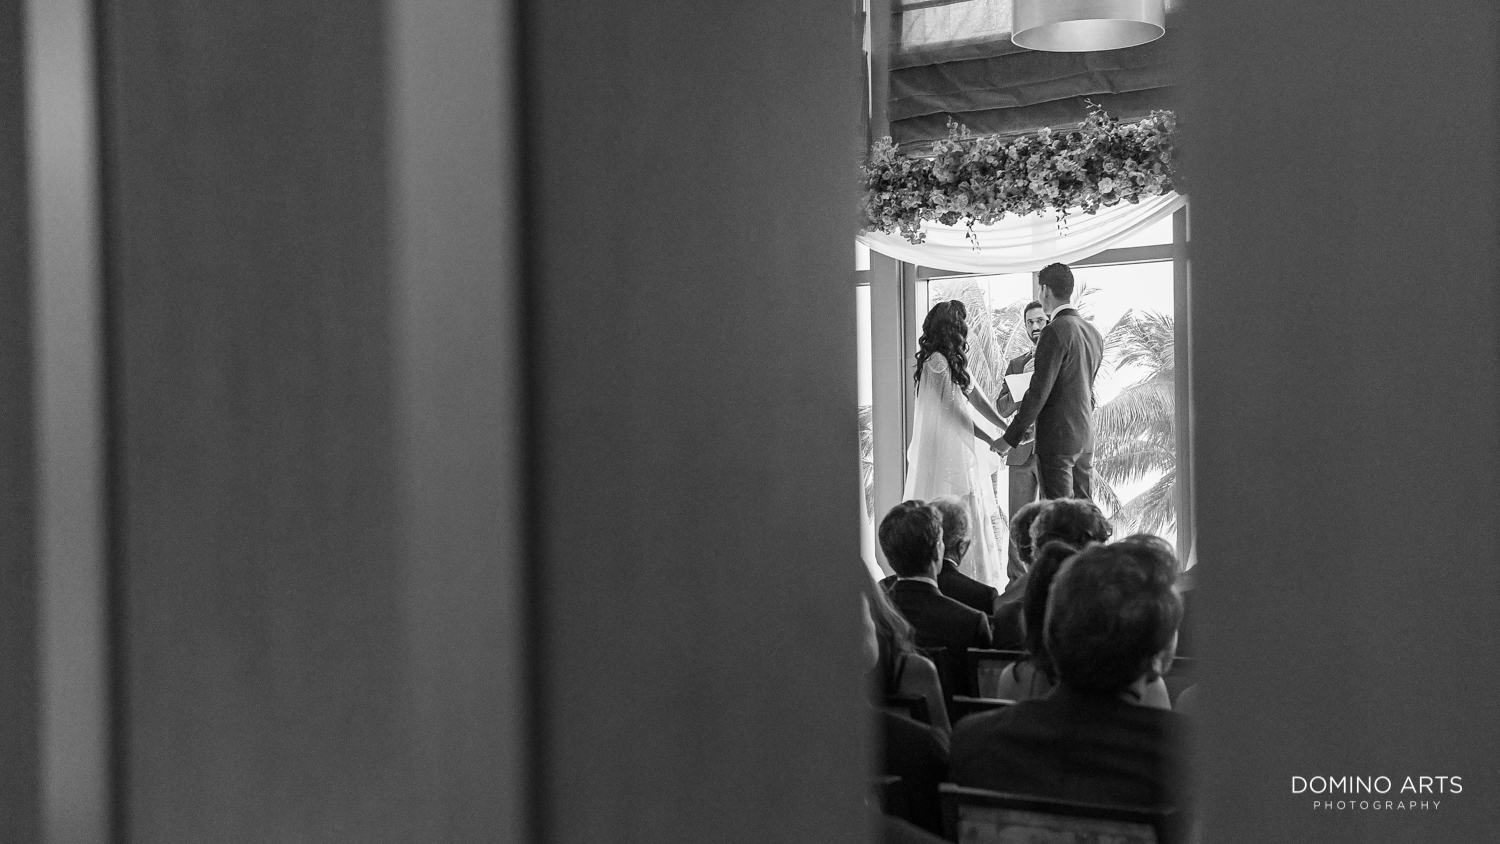 Wedding ceremony décor pictures at The St. Regis Bal Harbour